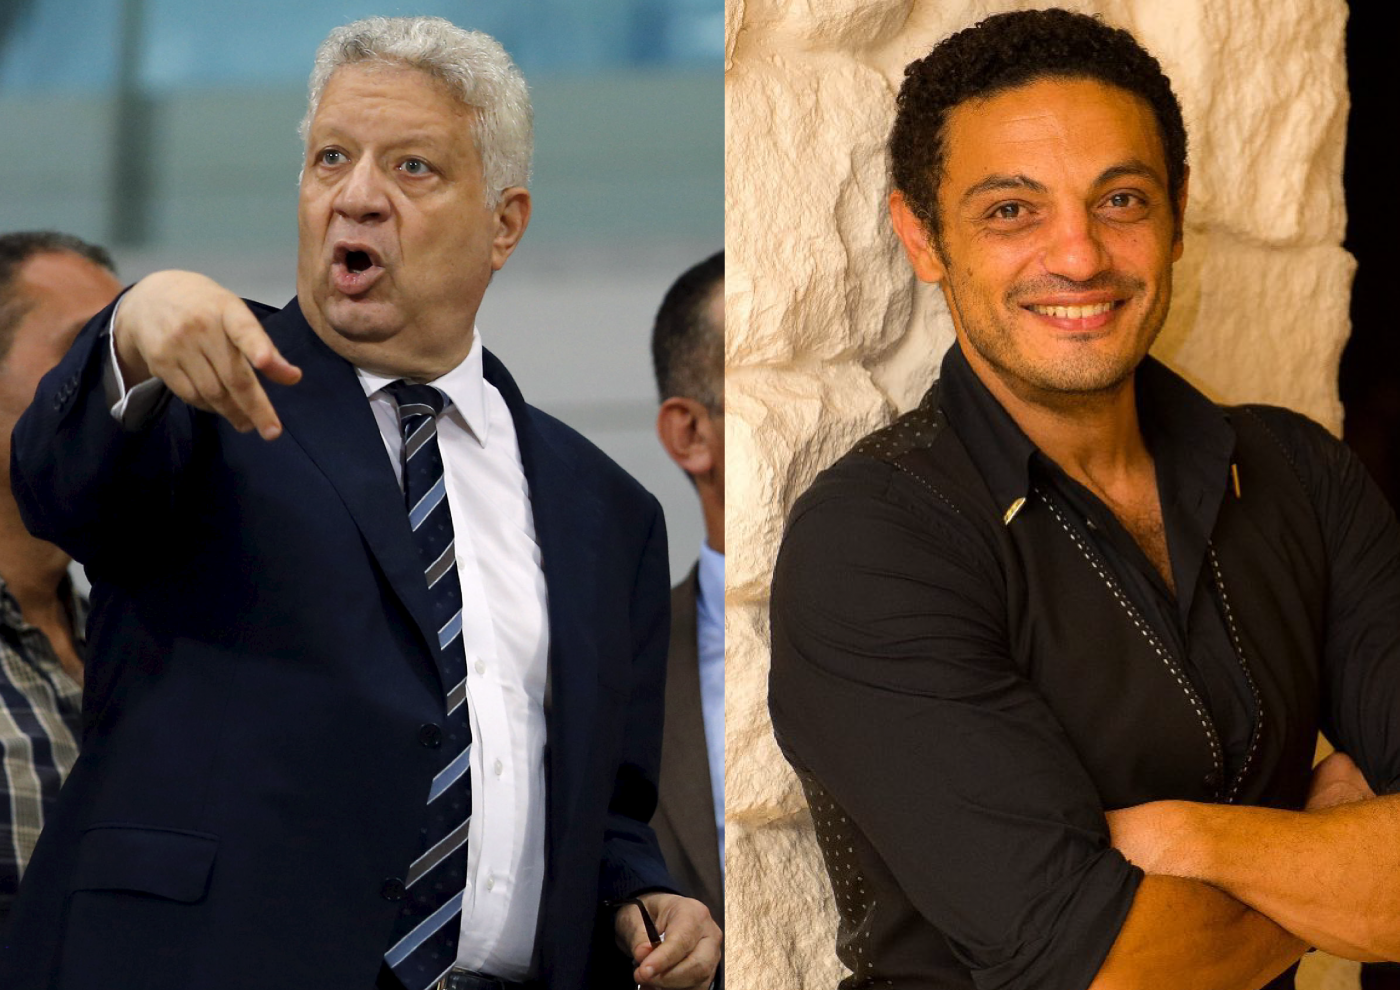 Zamalek-Al Ahly football match to kick off earlier after call for Egypt protests